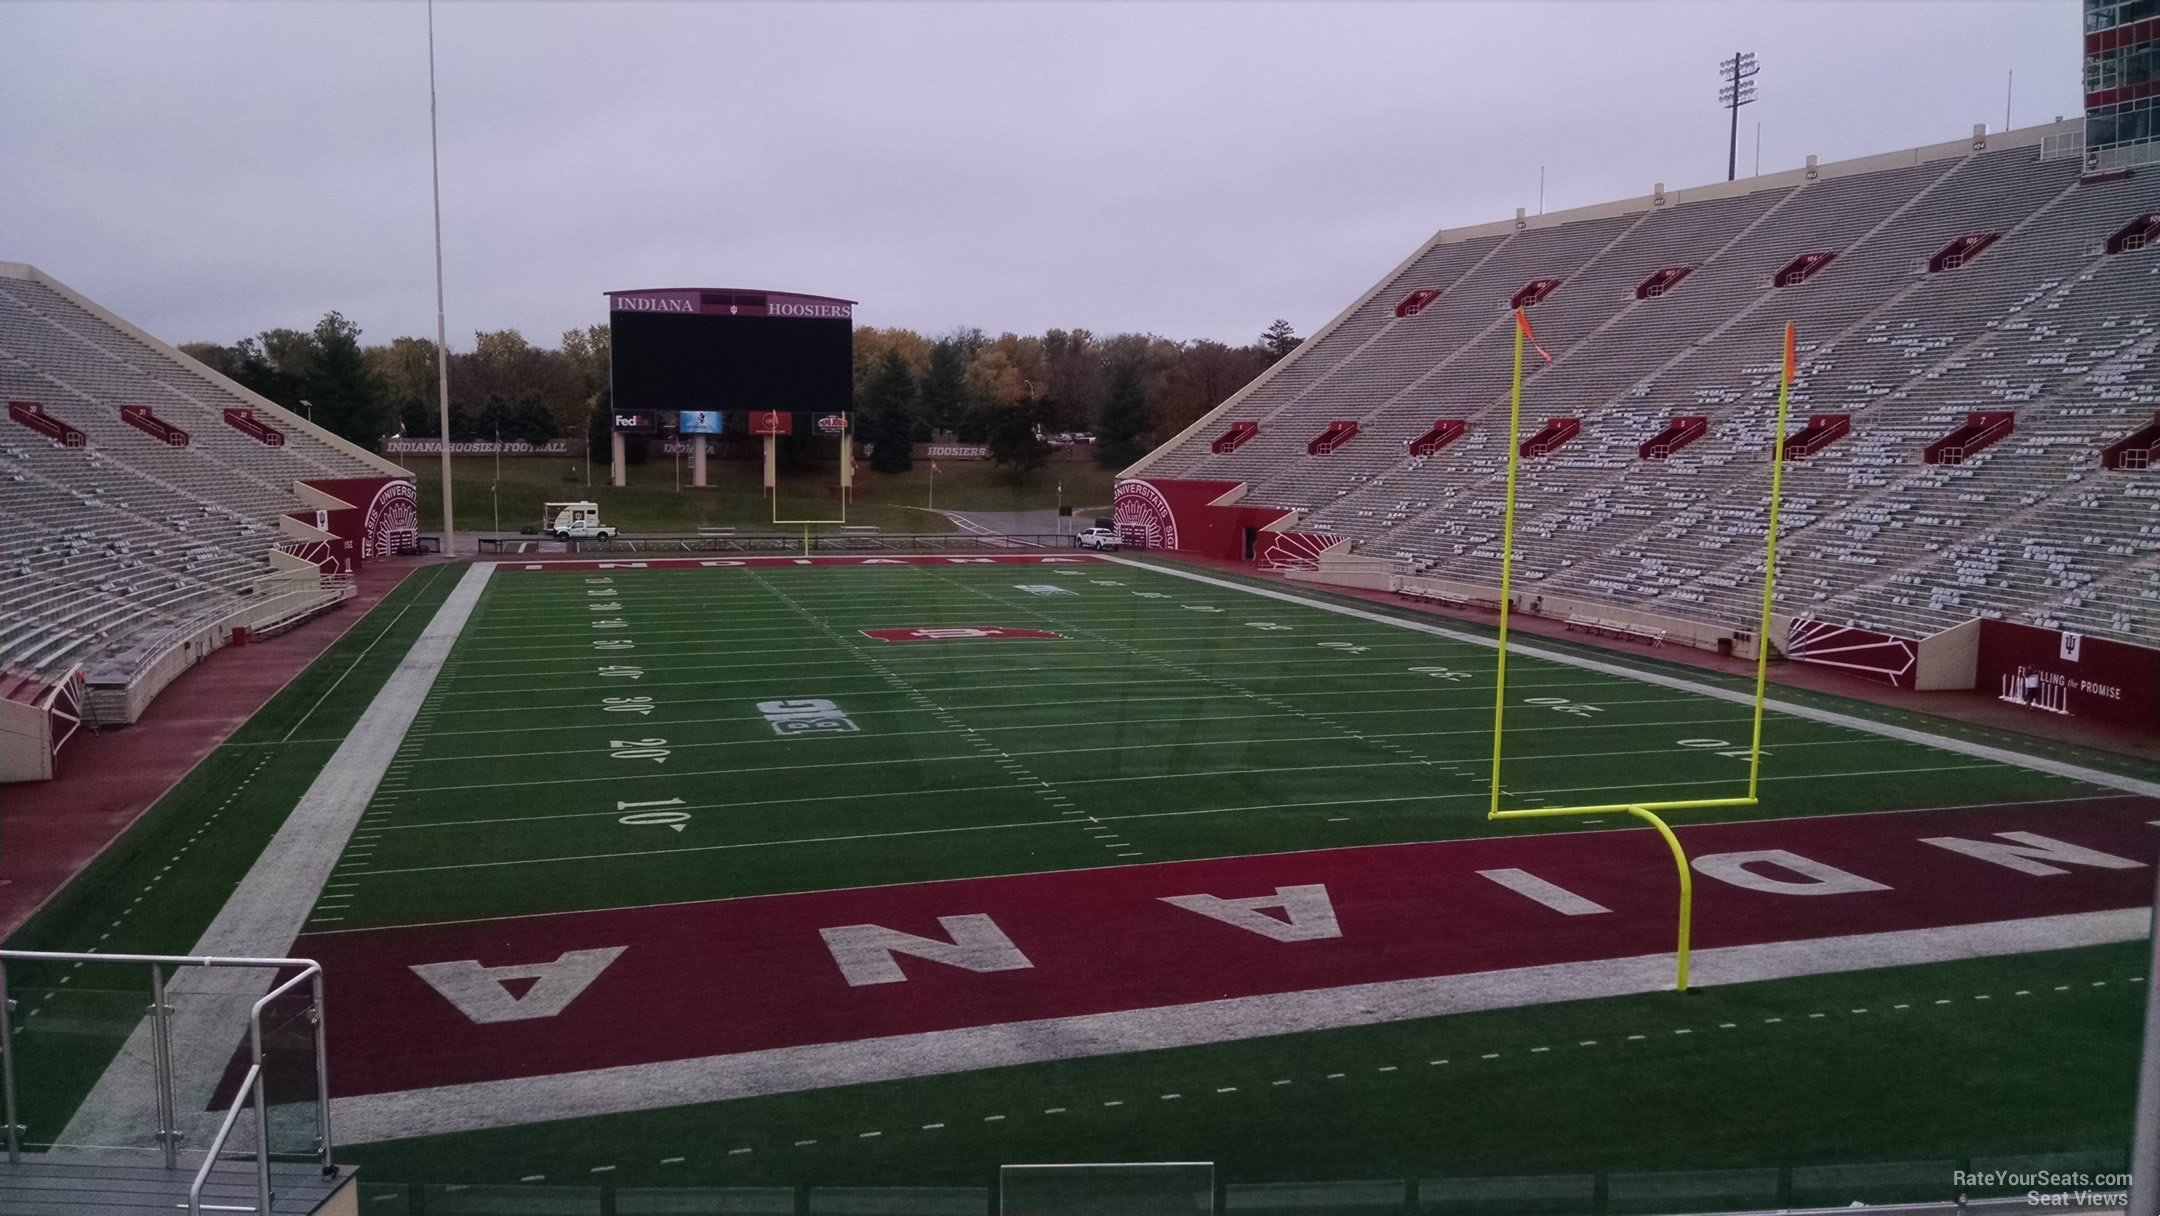 Seat View for Memorial Stadium - IN Section 18, Row 30